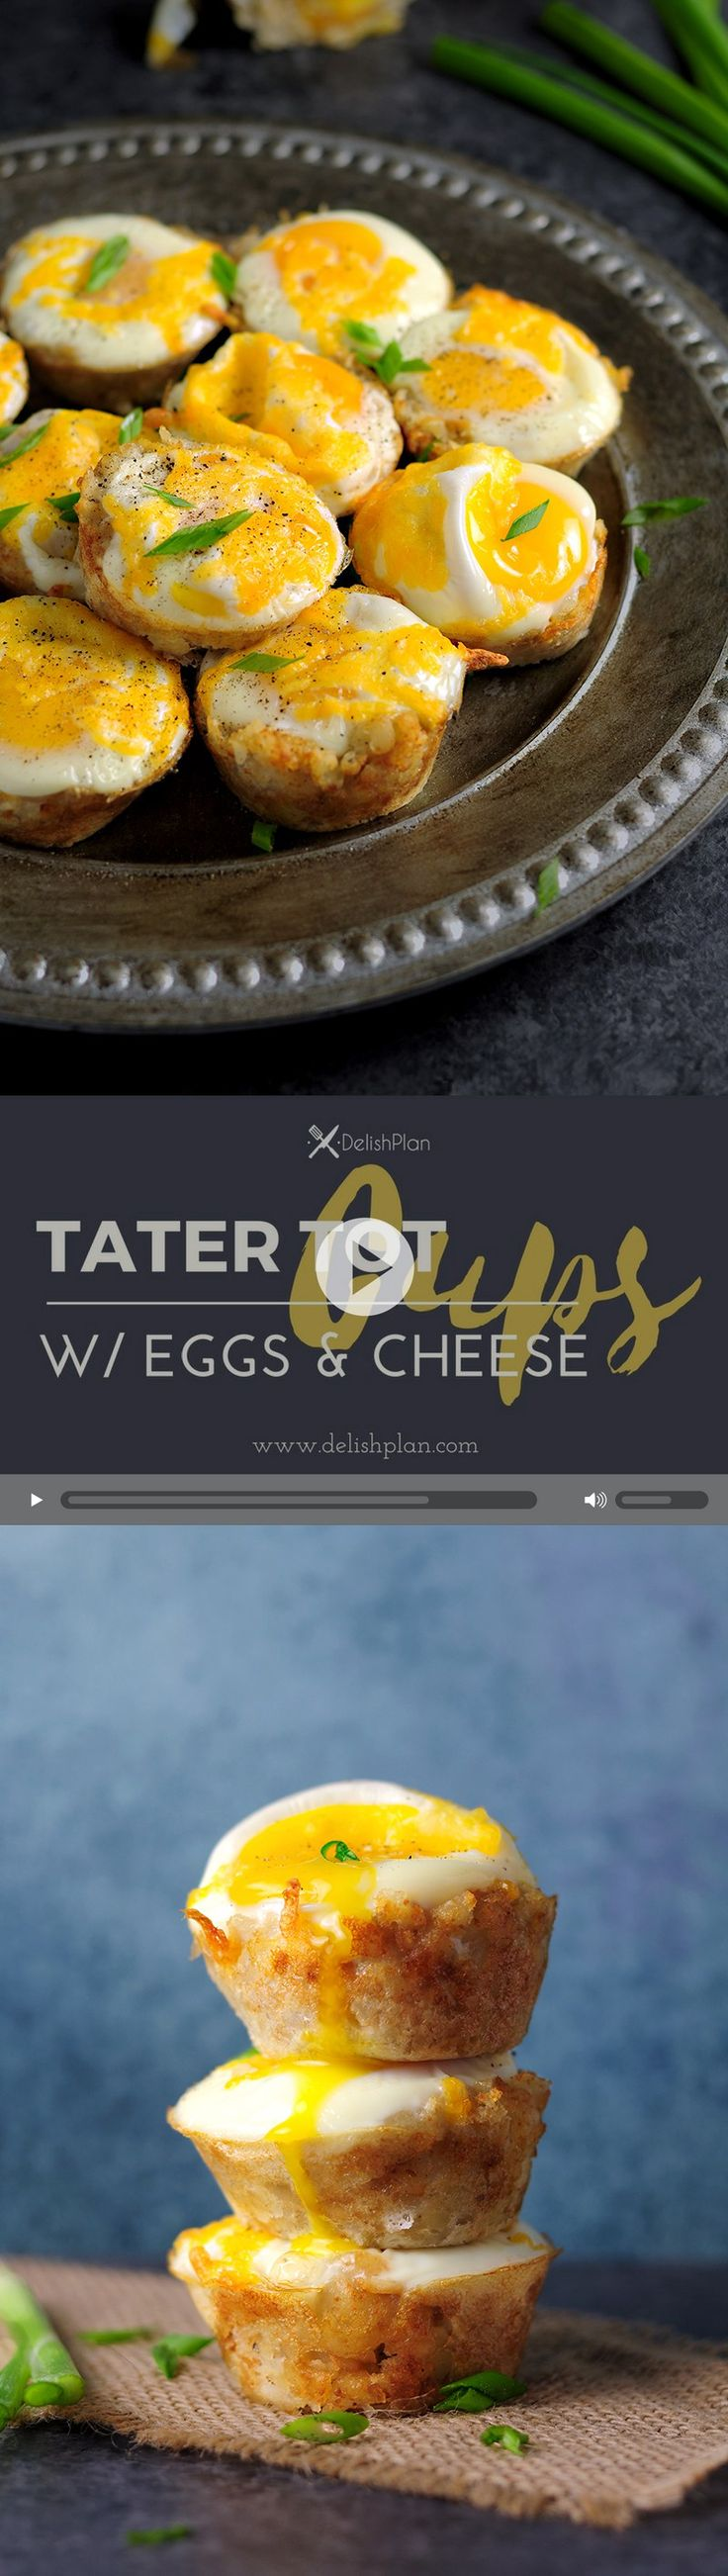 Eggs and Cheese baked with tater tots in a muffin pan, those tater tot cups are great breakfast and they are easy to make. Watch the video to learn how.